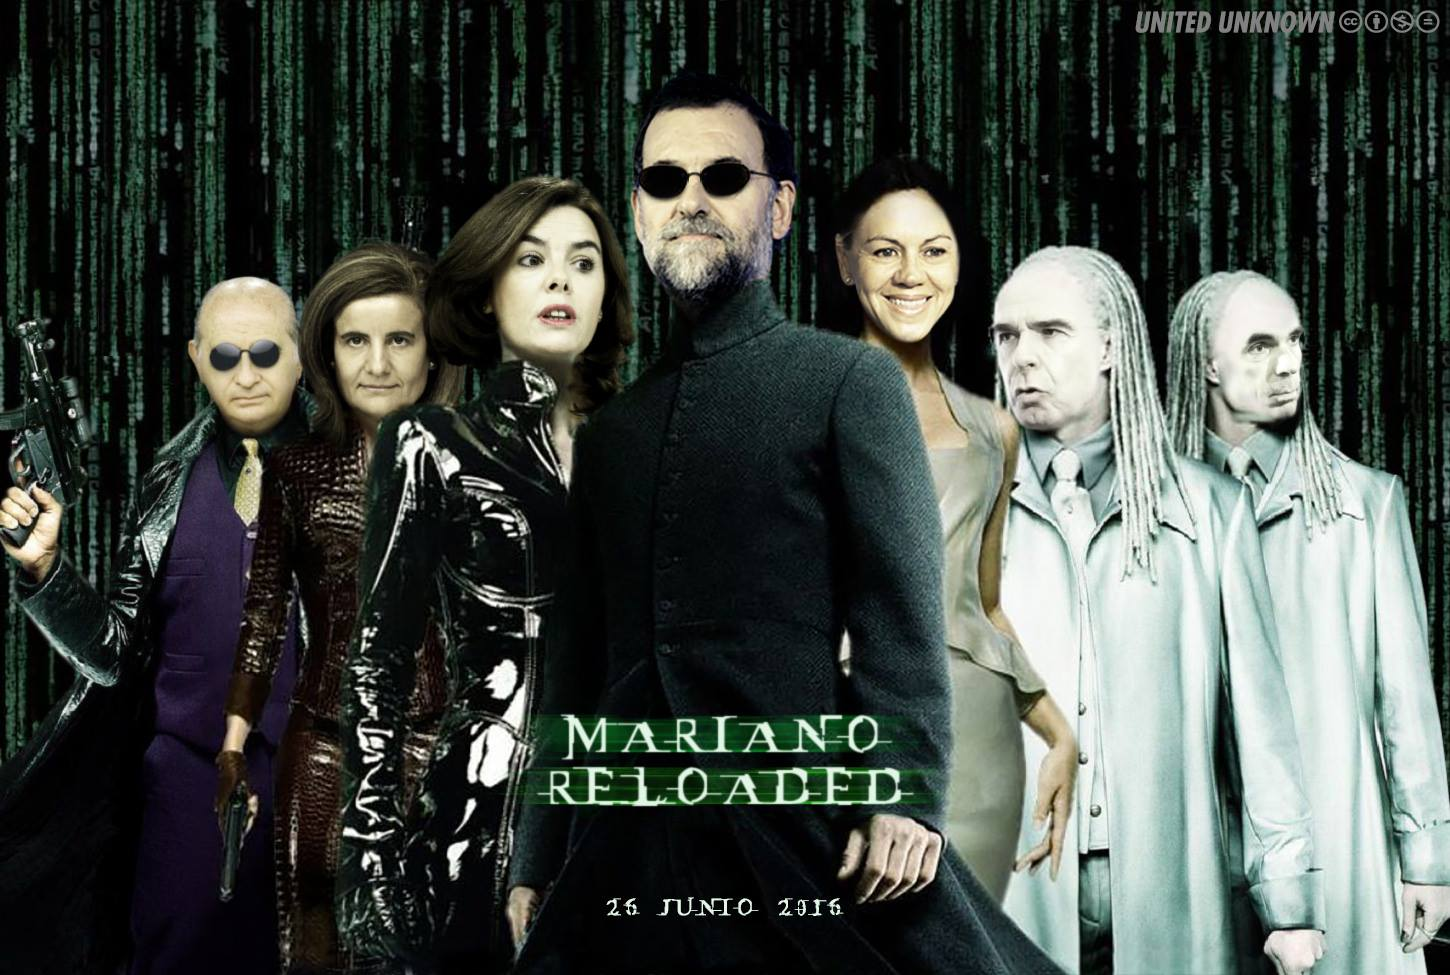 mariano reloaded